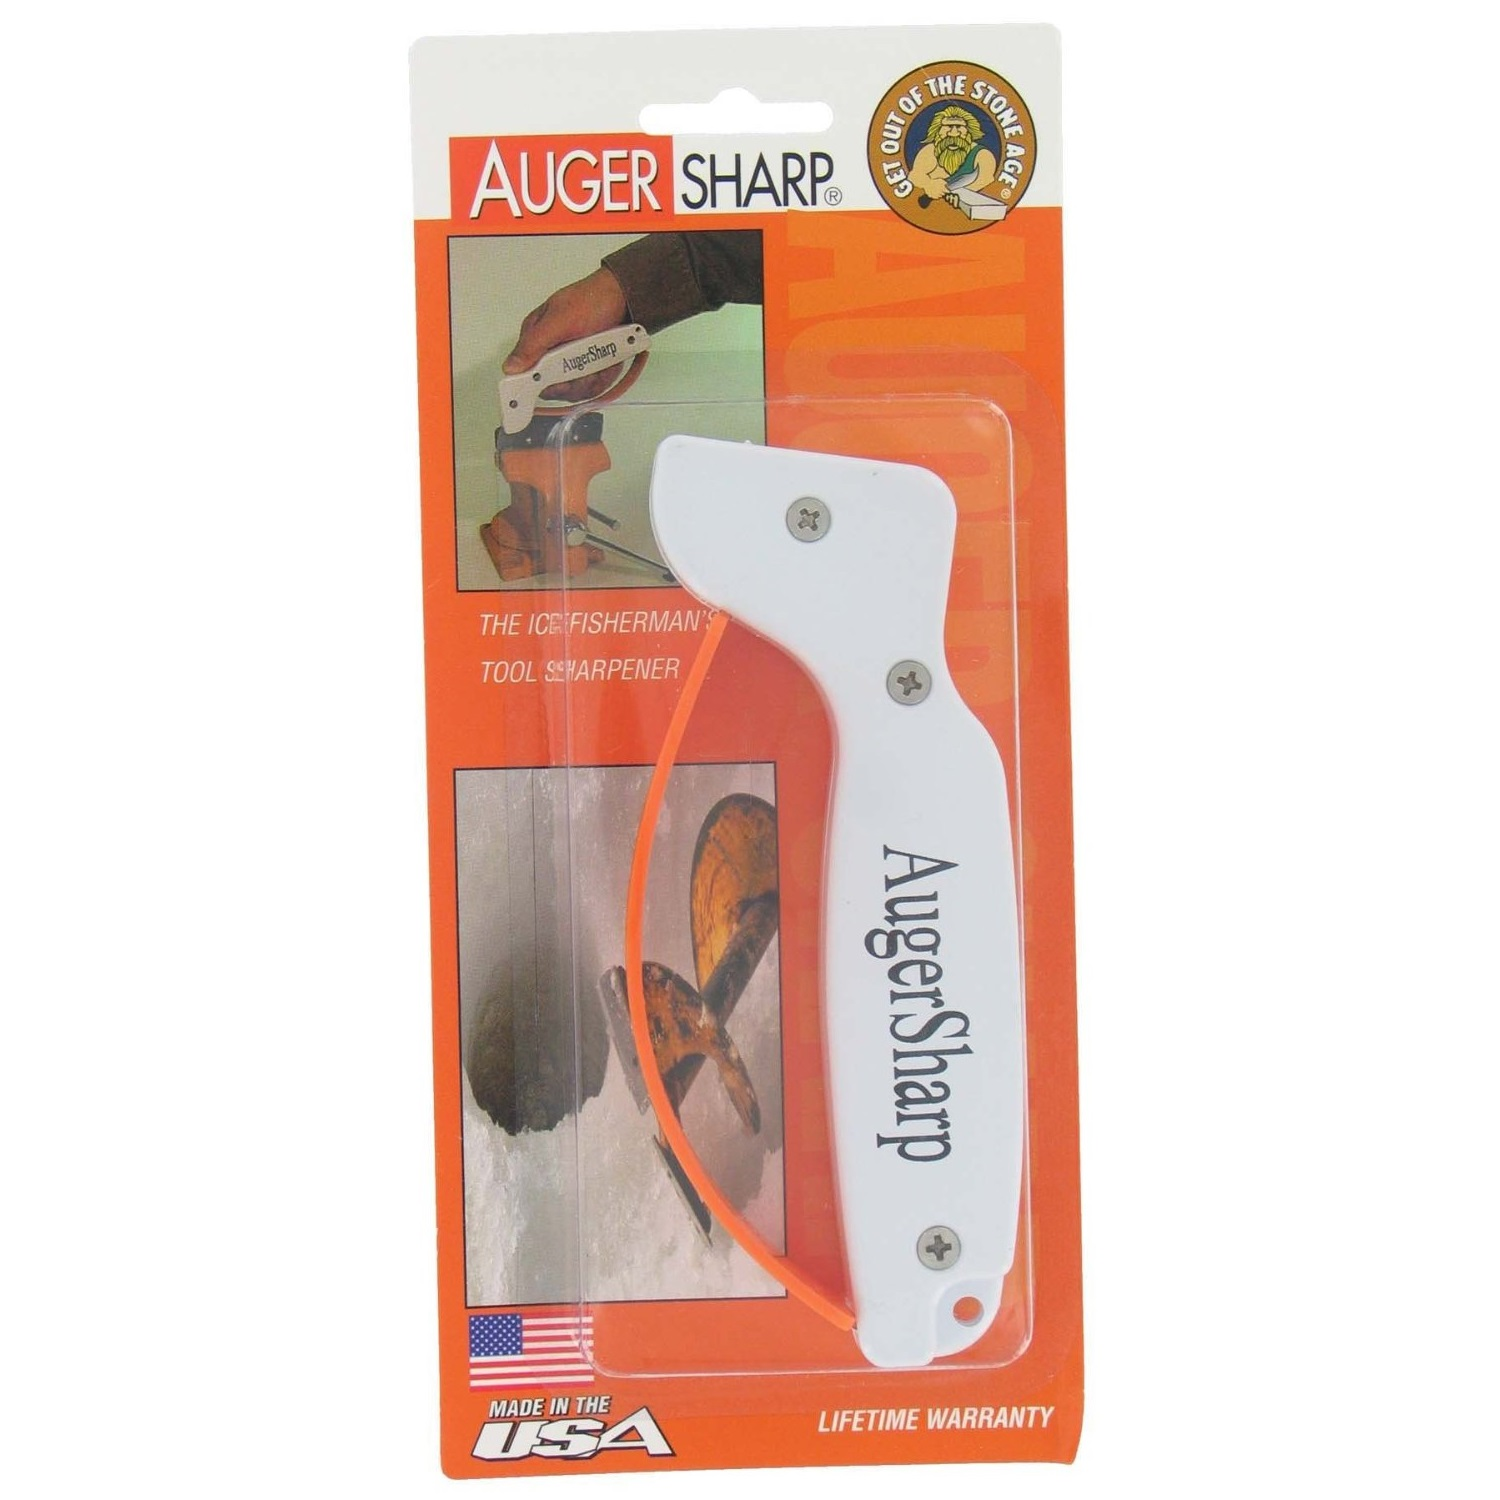 AccuSharp AugerSharp Ice Auger Tool Sharpener